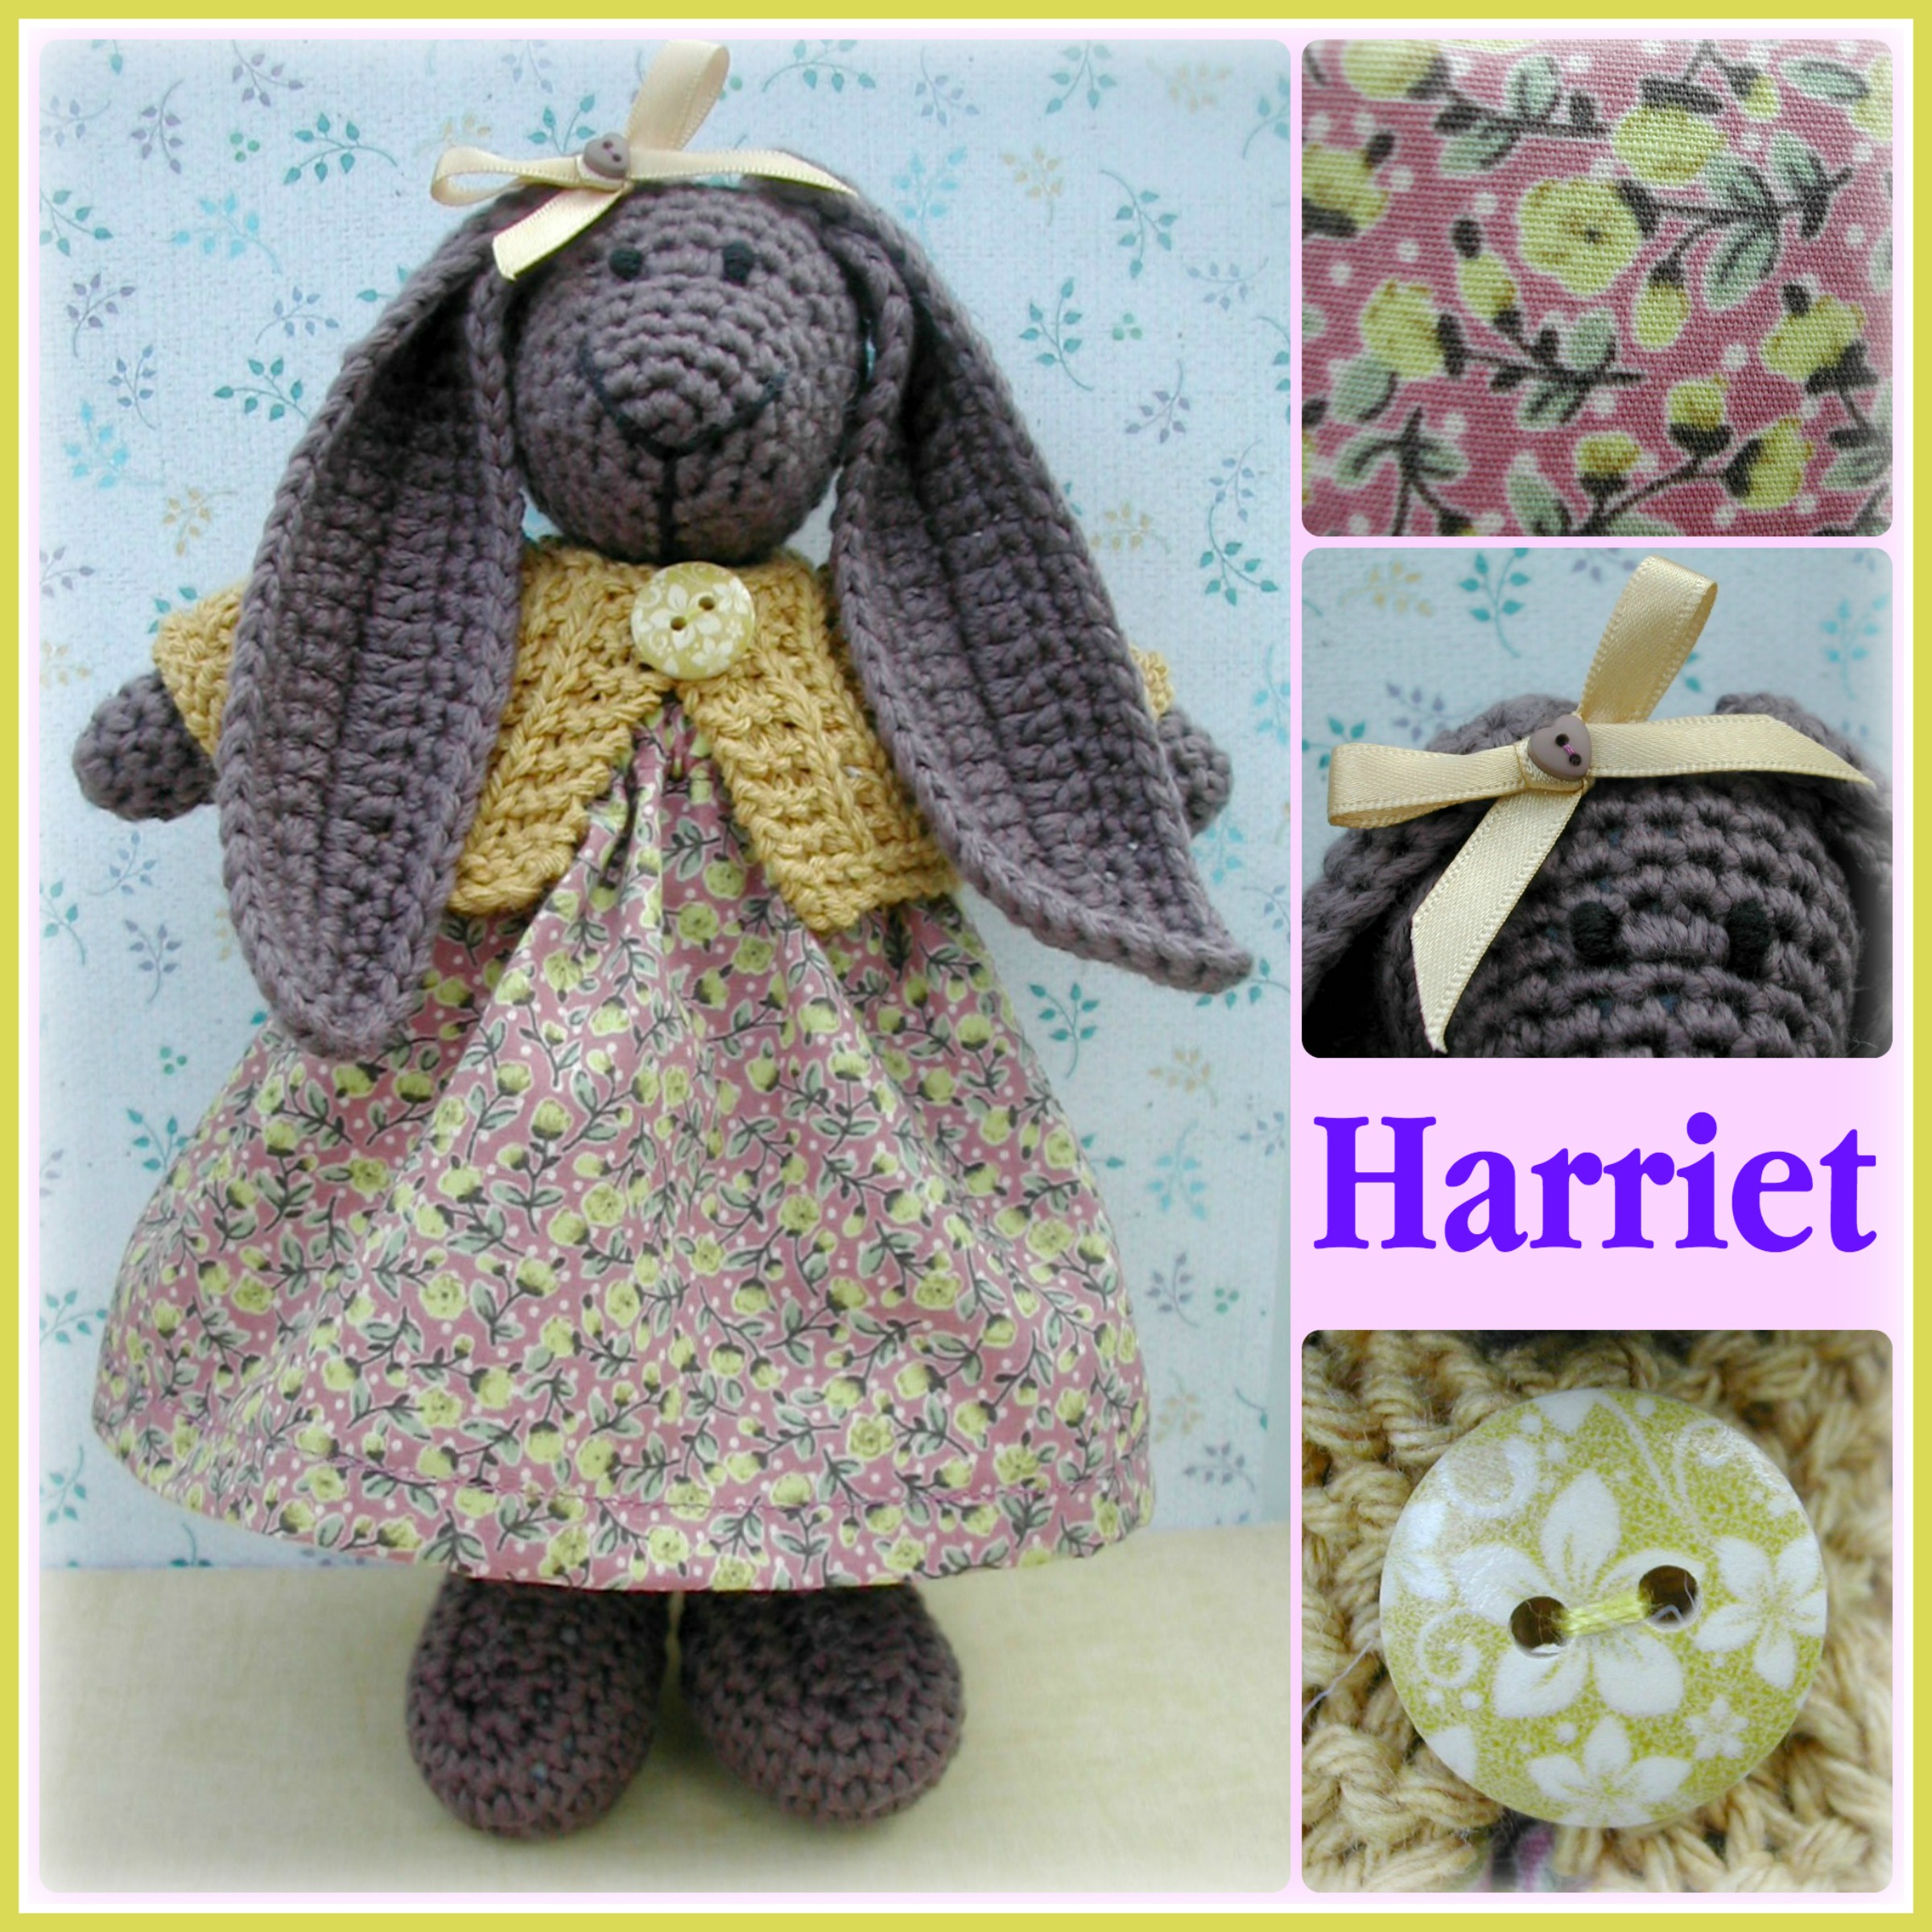 Harriet Collage